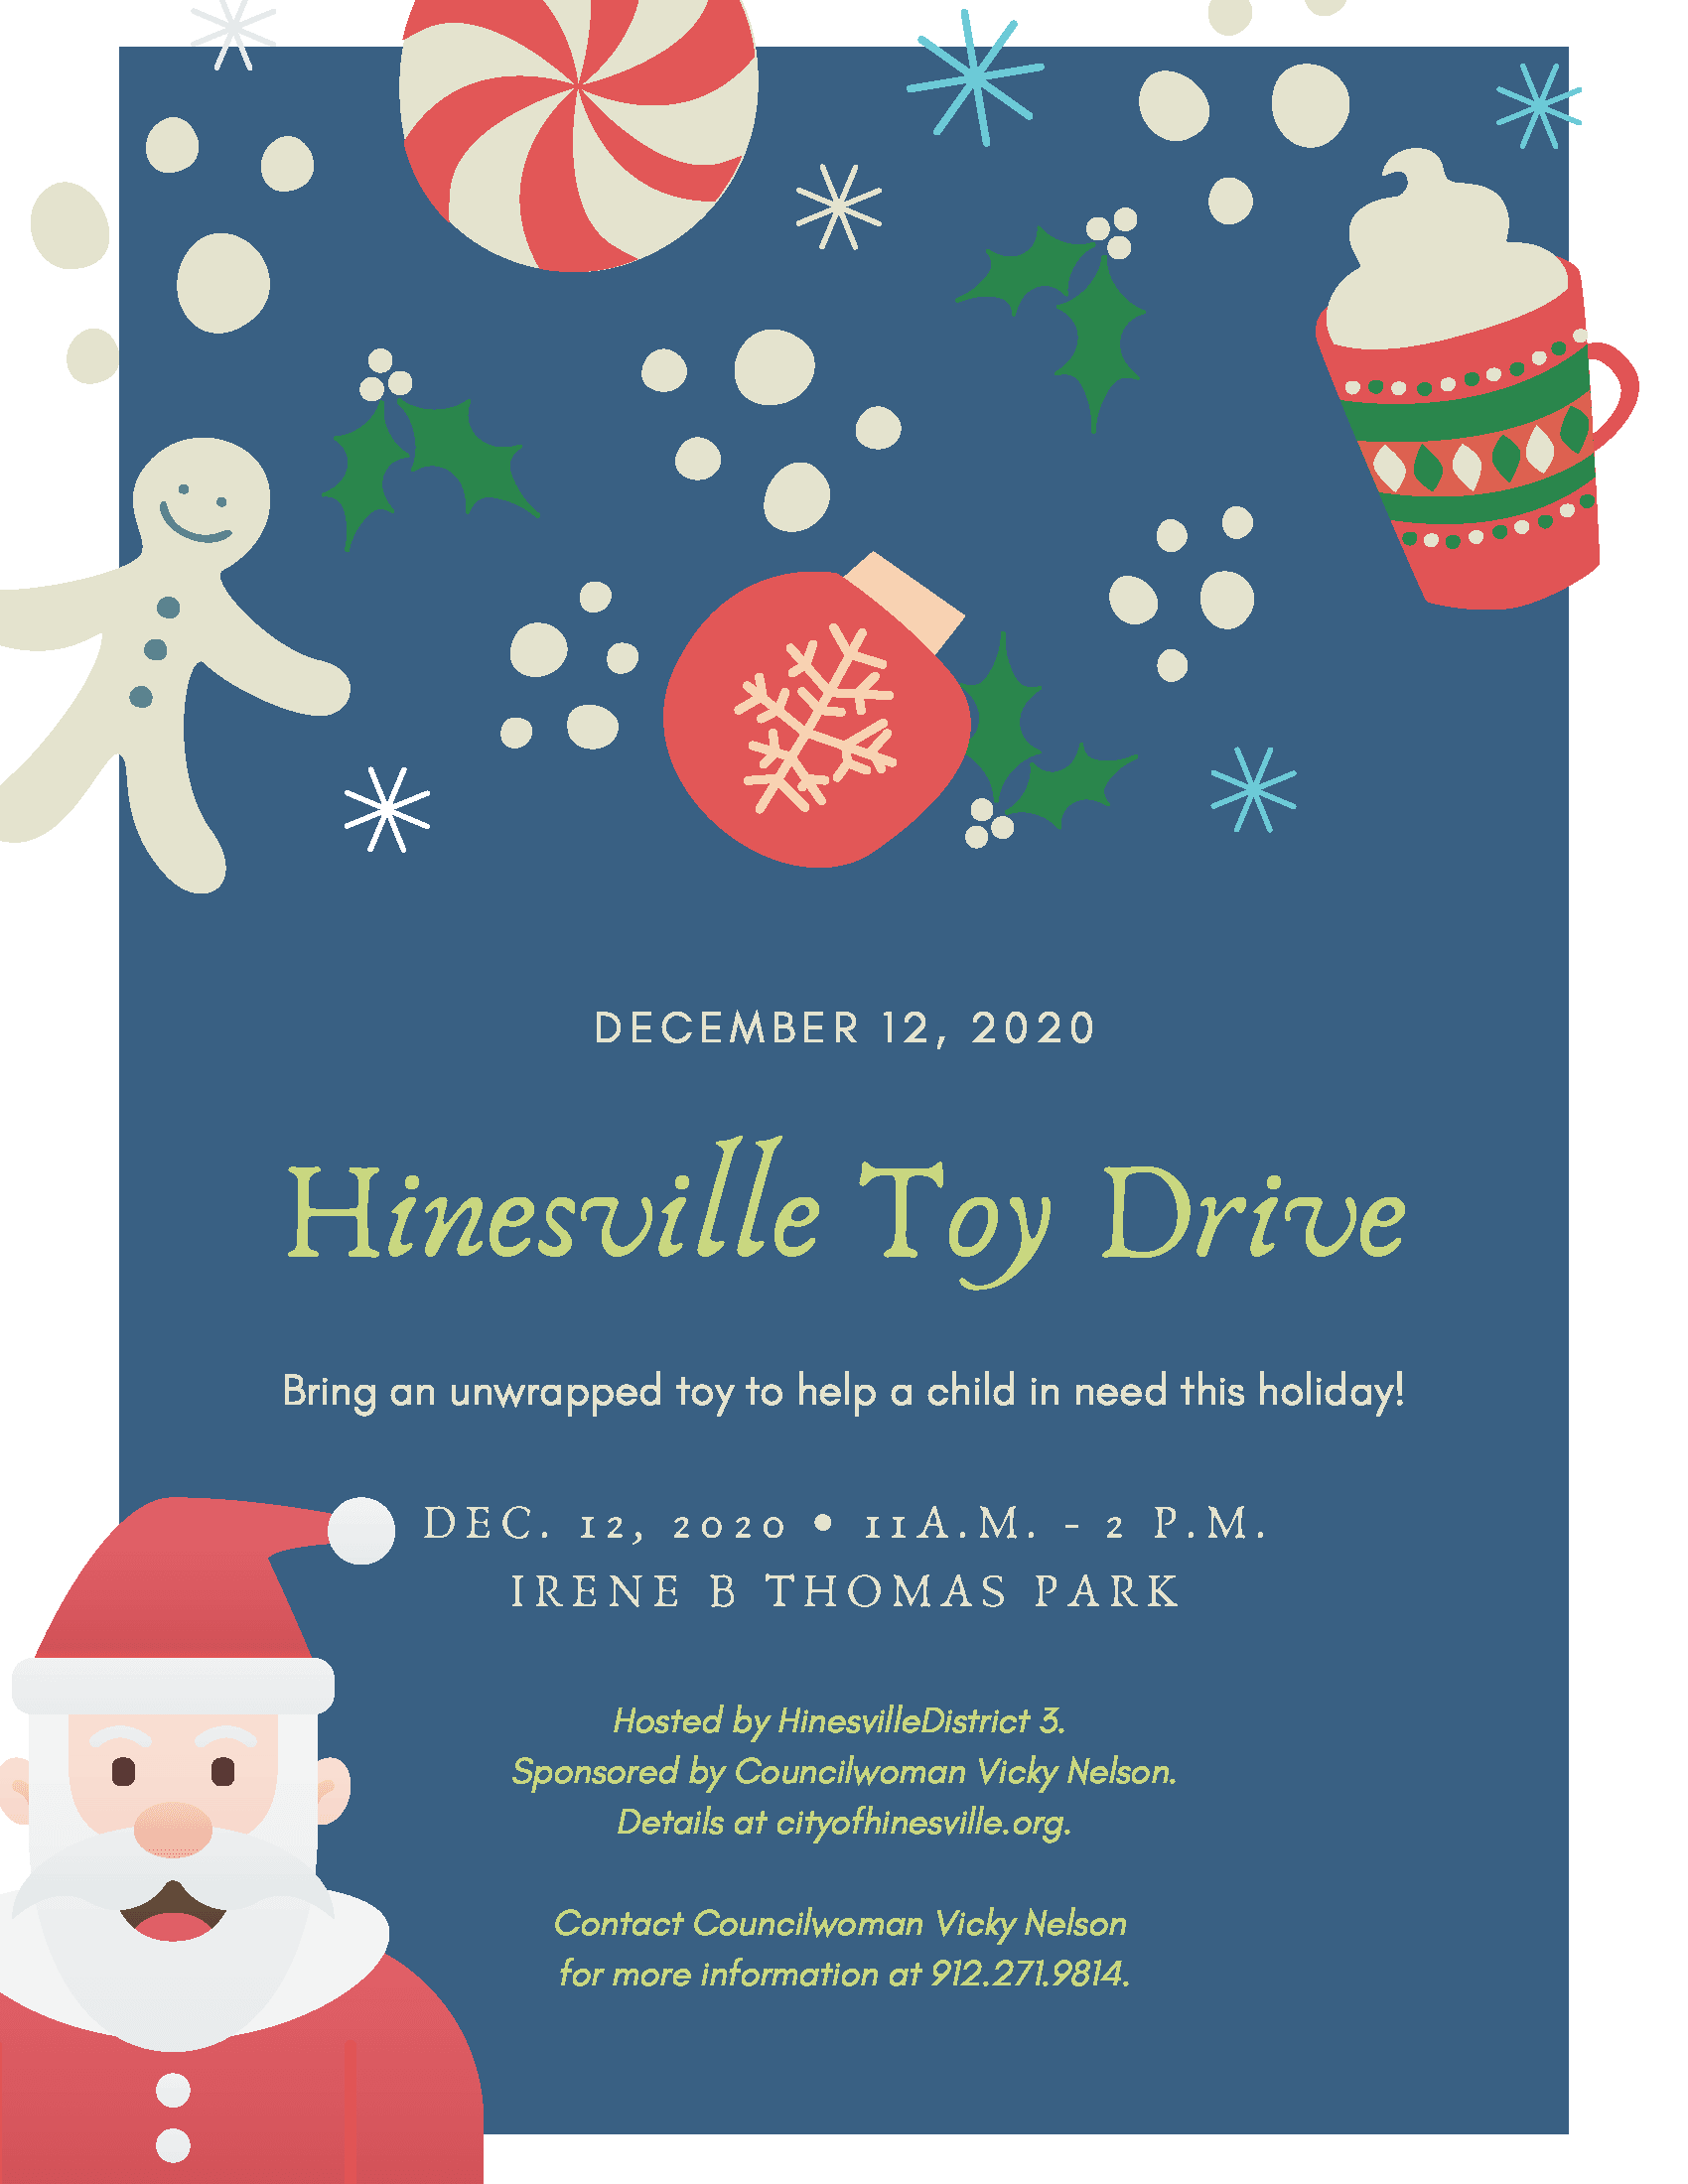 2020 Hinesville Toy Drive Flyer; details at cityofhinesville.org